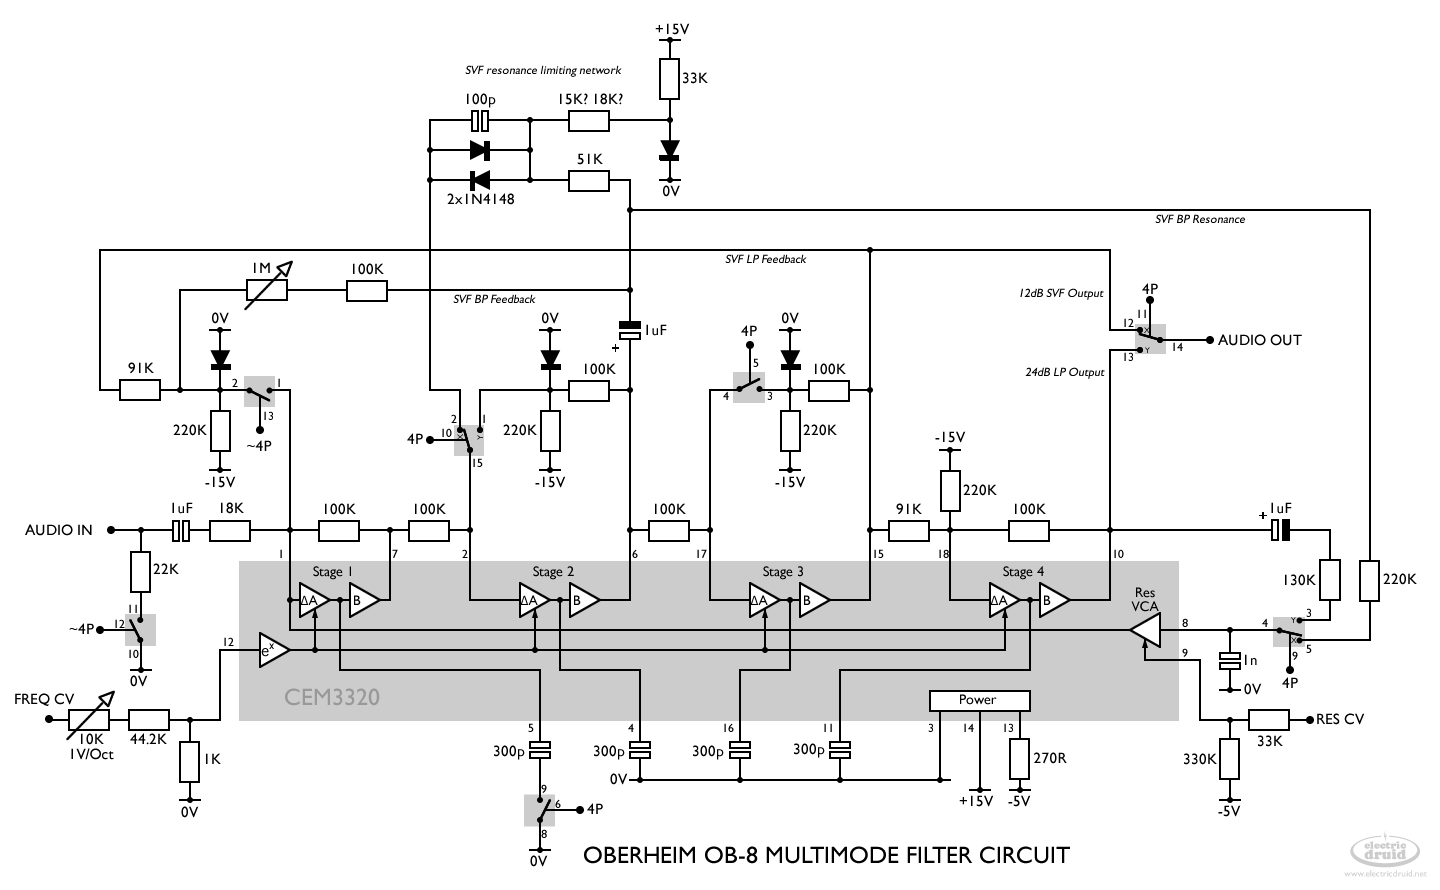 hight resolution of here s the full circuit diagram we can redraw that so we can easily see the two modes here s the ob 8 s 4 pole lowpass filter mode